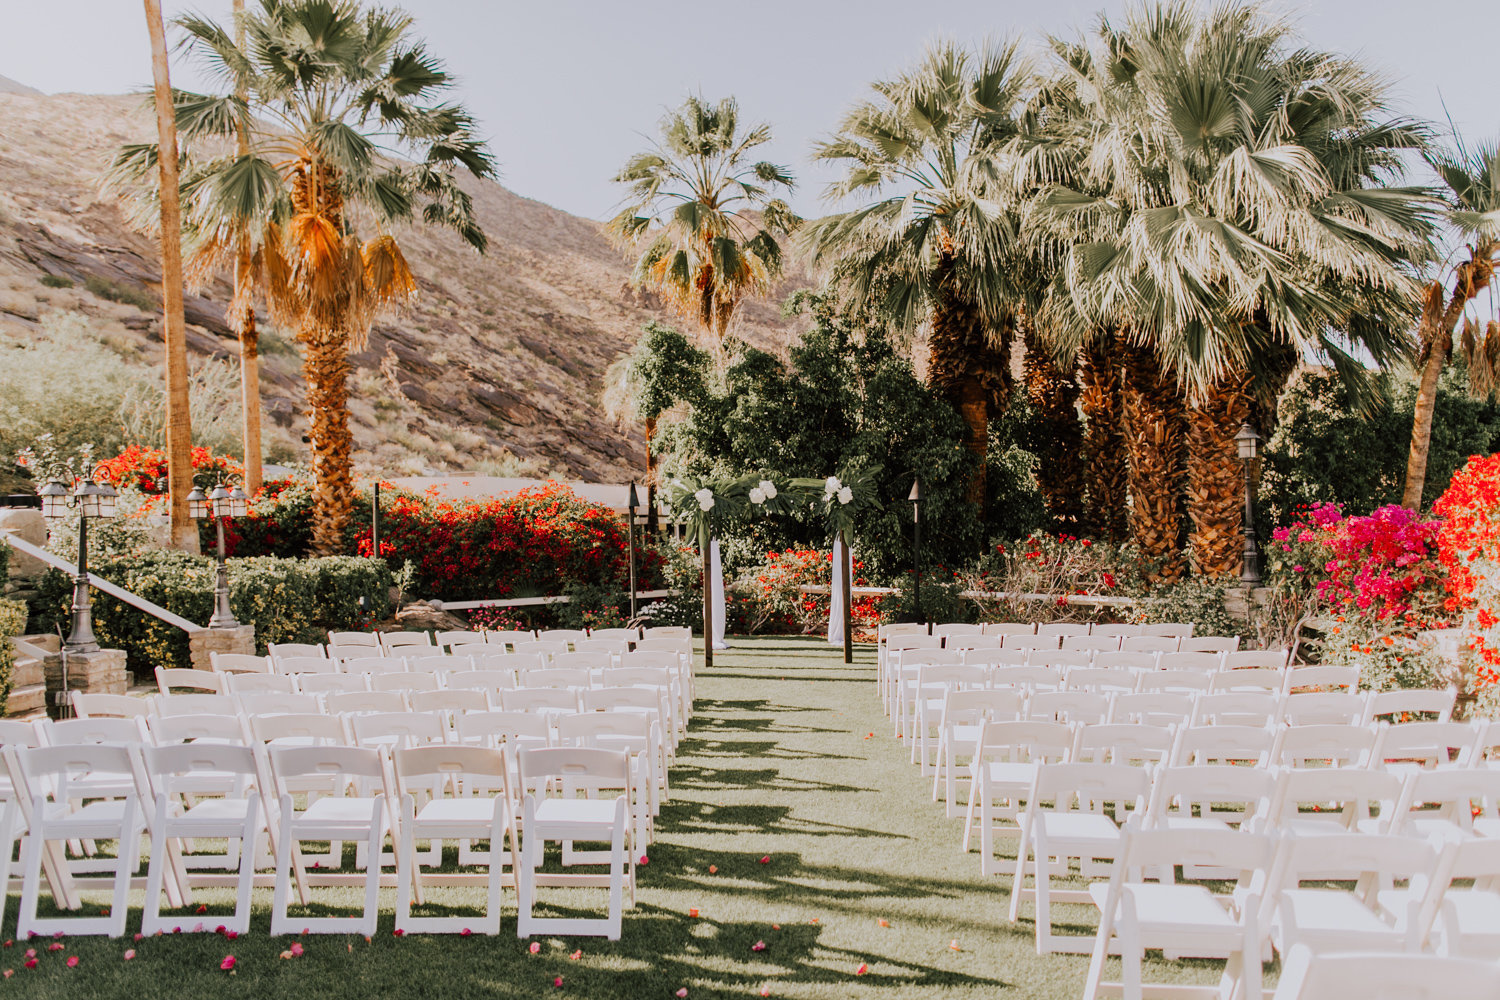 Brianna Broyles_Spencers Wedding_Palm Springs_Wedding Photographer-51